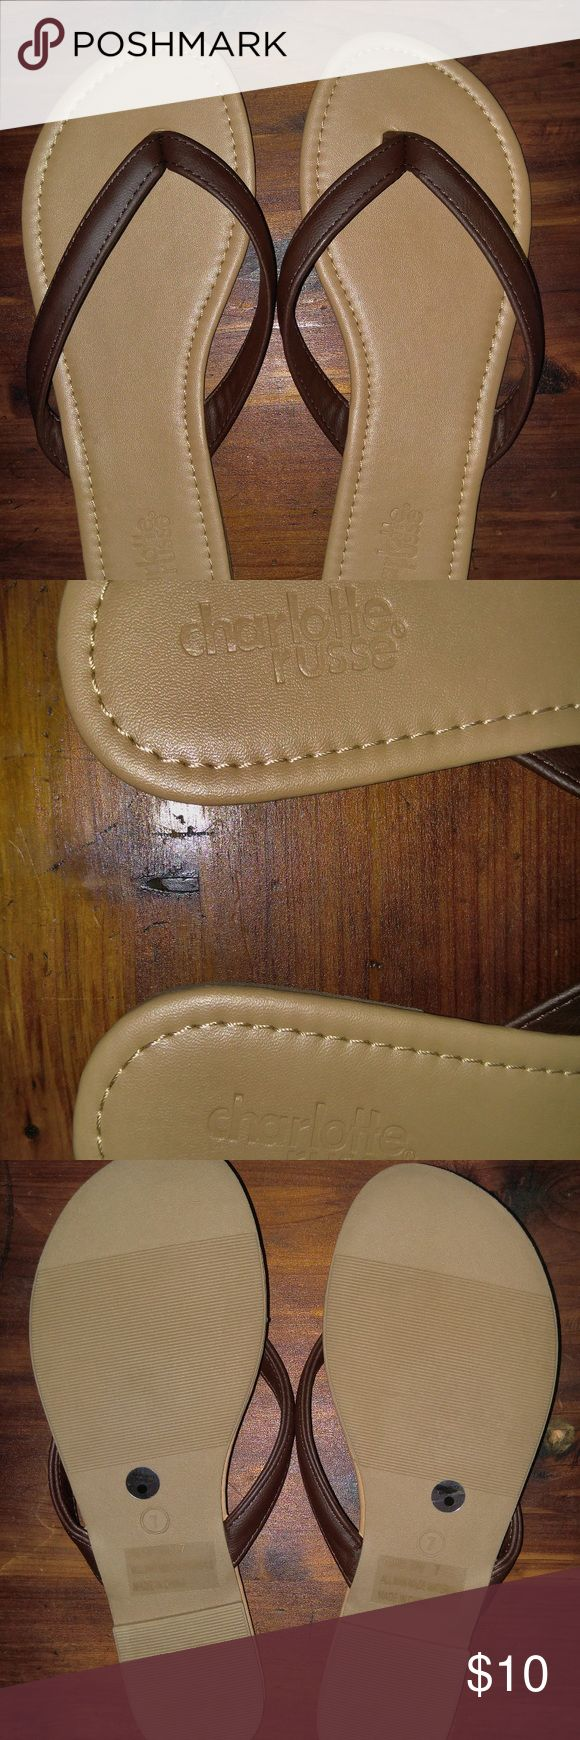 Charlotte Russe Brown Flip Flops NWOT Charlotte Russe, Brown Flip Flops, NWOT, Never worn, clean no stains or damage. Size 7. I am only selling them because I ordered them online & they were too small Charlotte Russe Shoes Sandals